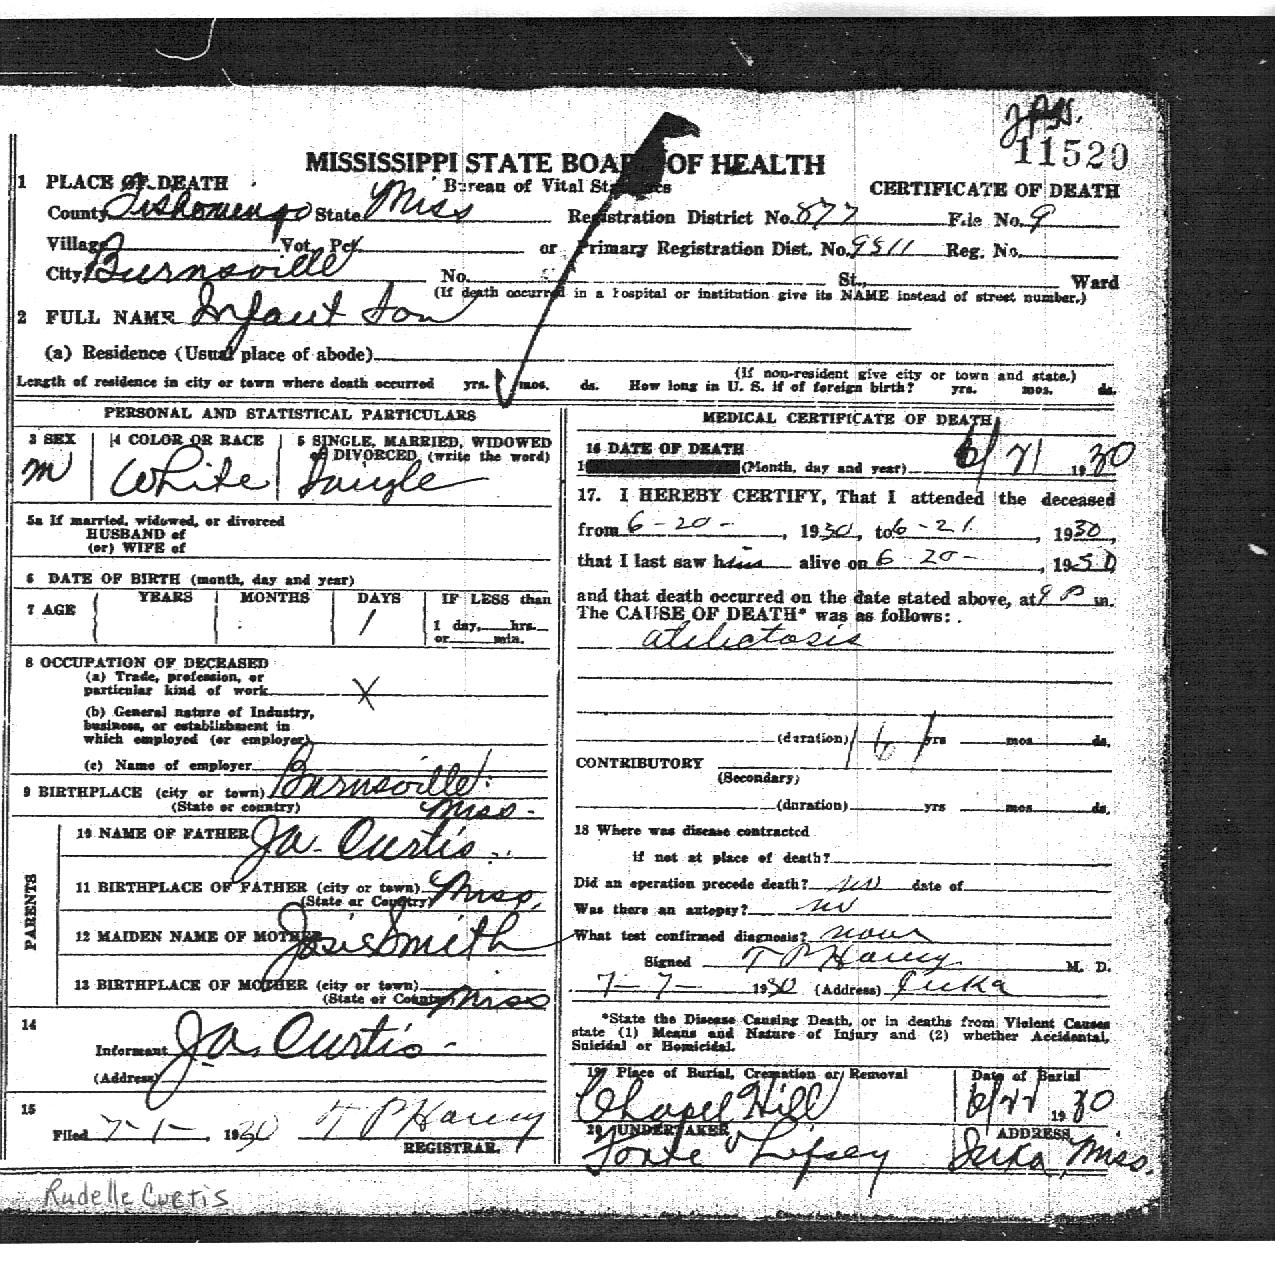 Rudelle curtis 1930 1930 find a grave memorial certificate of death for rudelle curtis born and died in burnsville tishomingo county mississippi rudelle lived for only a day in 1930 but my mother aiddatafo Images